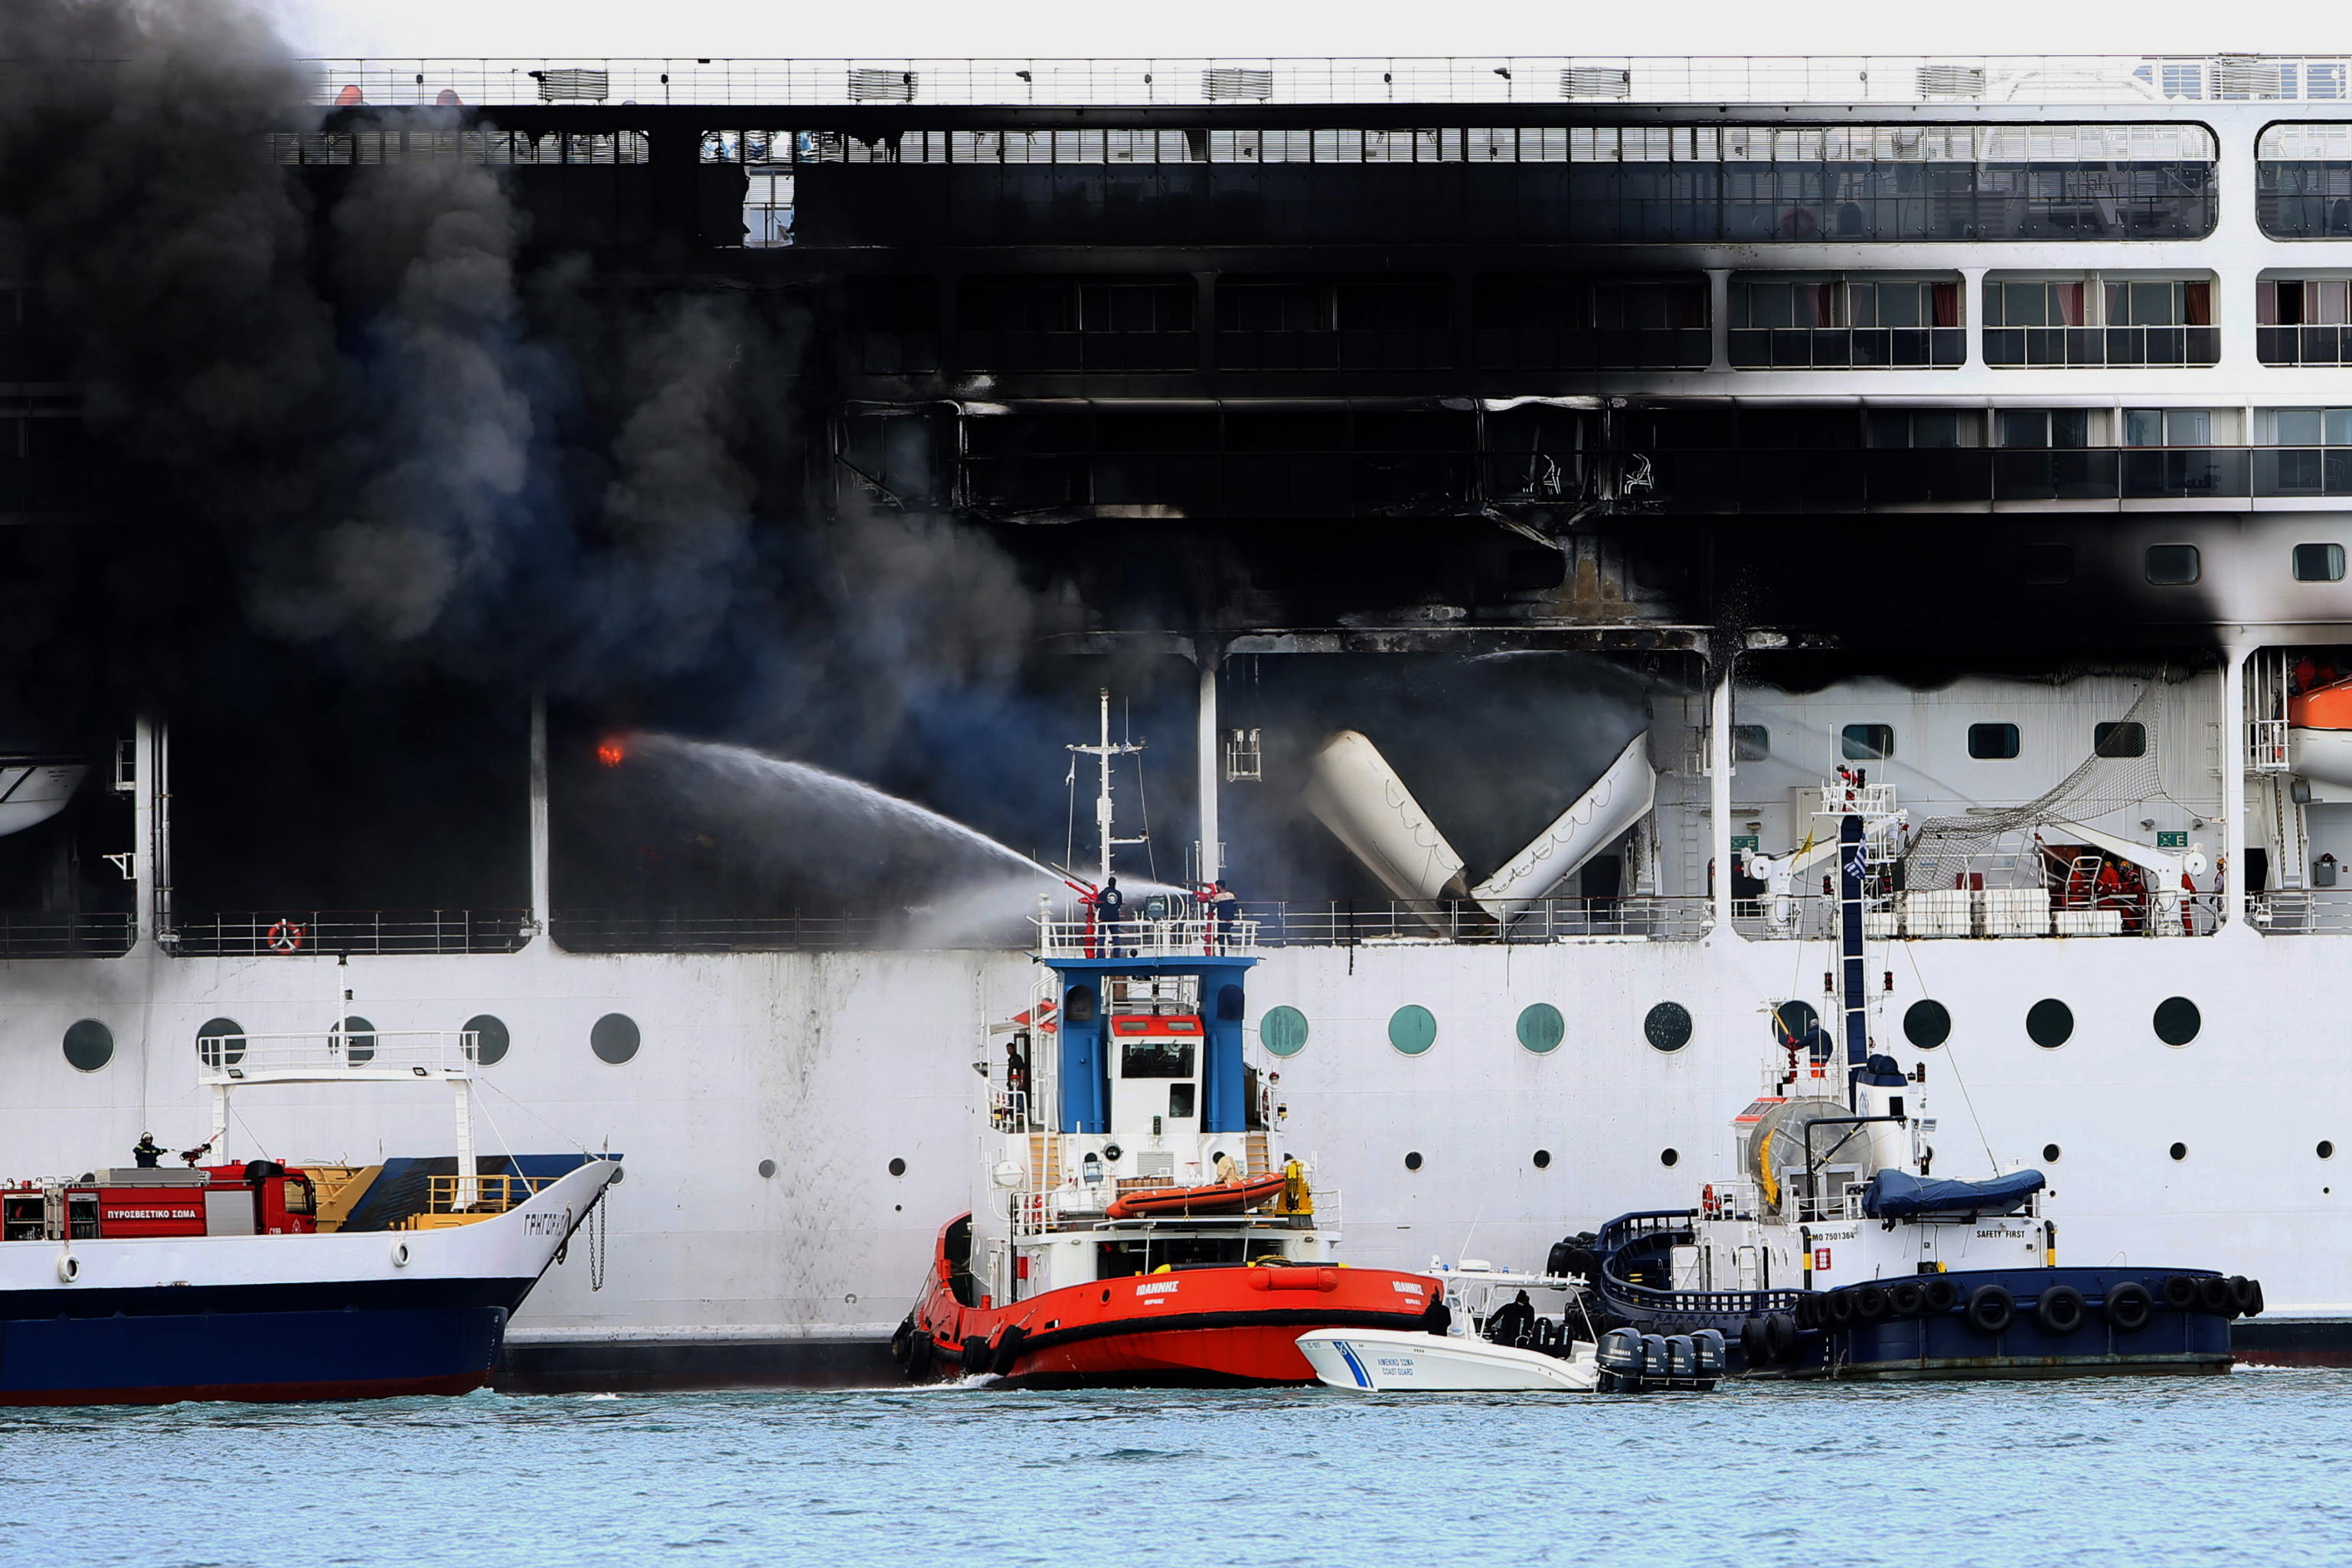 epa09069962 A fire broke out  on the 'MSC Lirica' cruiseship on 12 March 2021, while it was tied at the Corfu port, Ionian Sea, Greece, since January 30 for the winter season. Onboard were crew members only. The cause of the fire, which broke out at starboard, was not made known as of this writing. Firefighters were trying to put out the blaze.  EPA/STAMATIS KATAPODIS